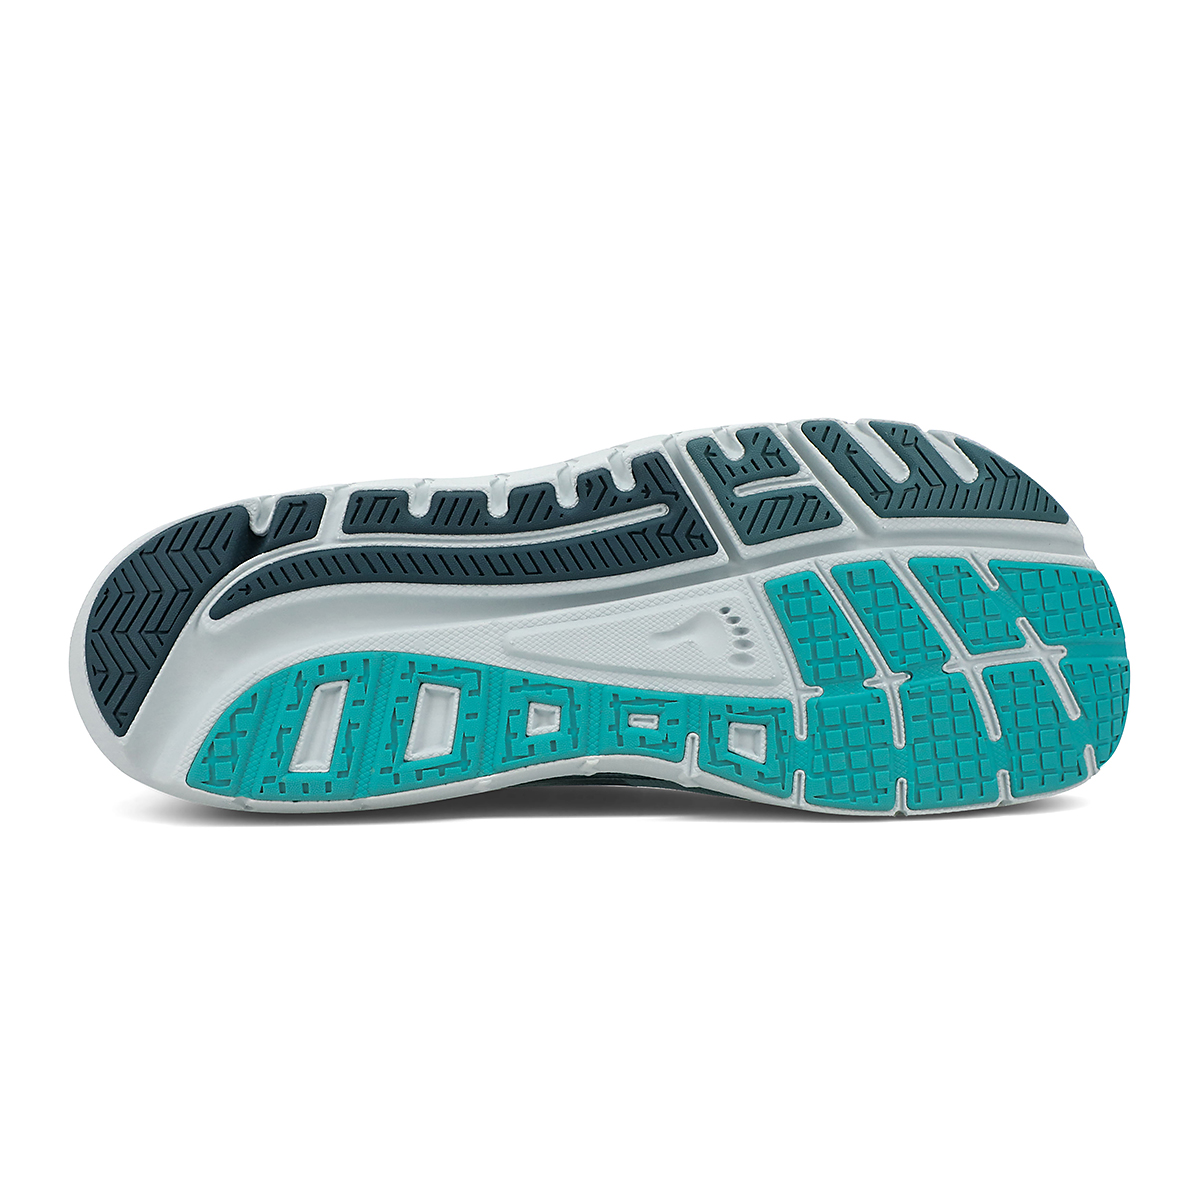 Women's Altra Provision 5 Running Shoe - Color: Teal/Green - Size: 5.5 - Width: Regular, Teal/Green, large, image 4